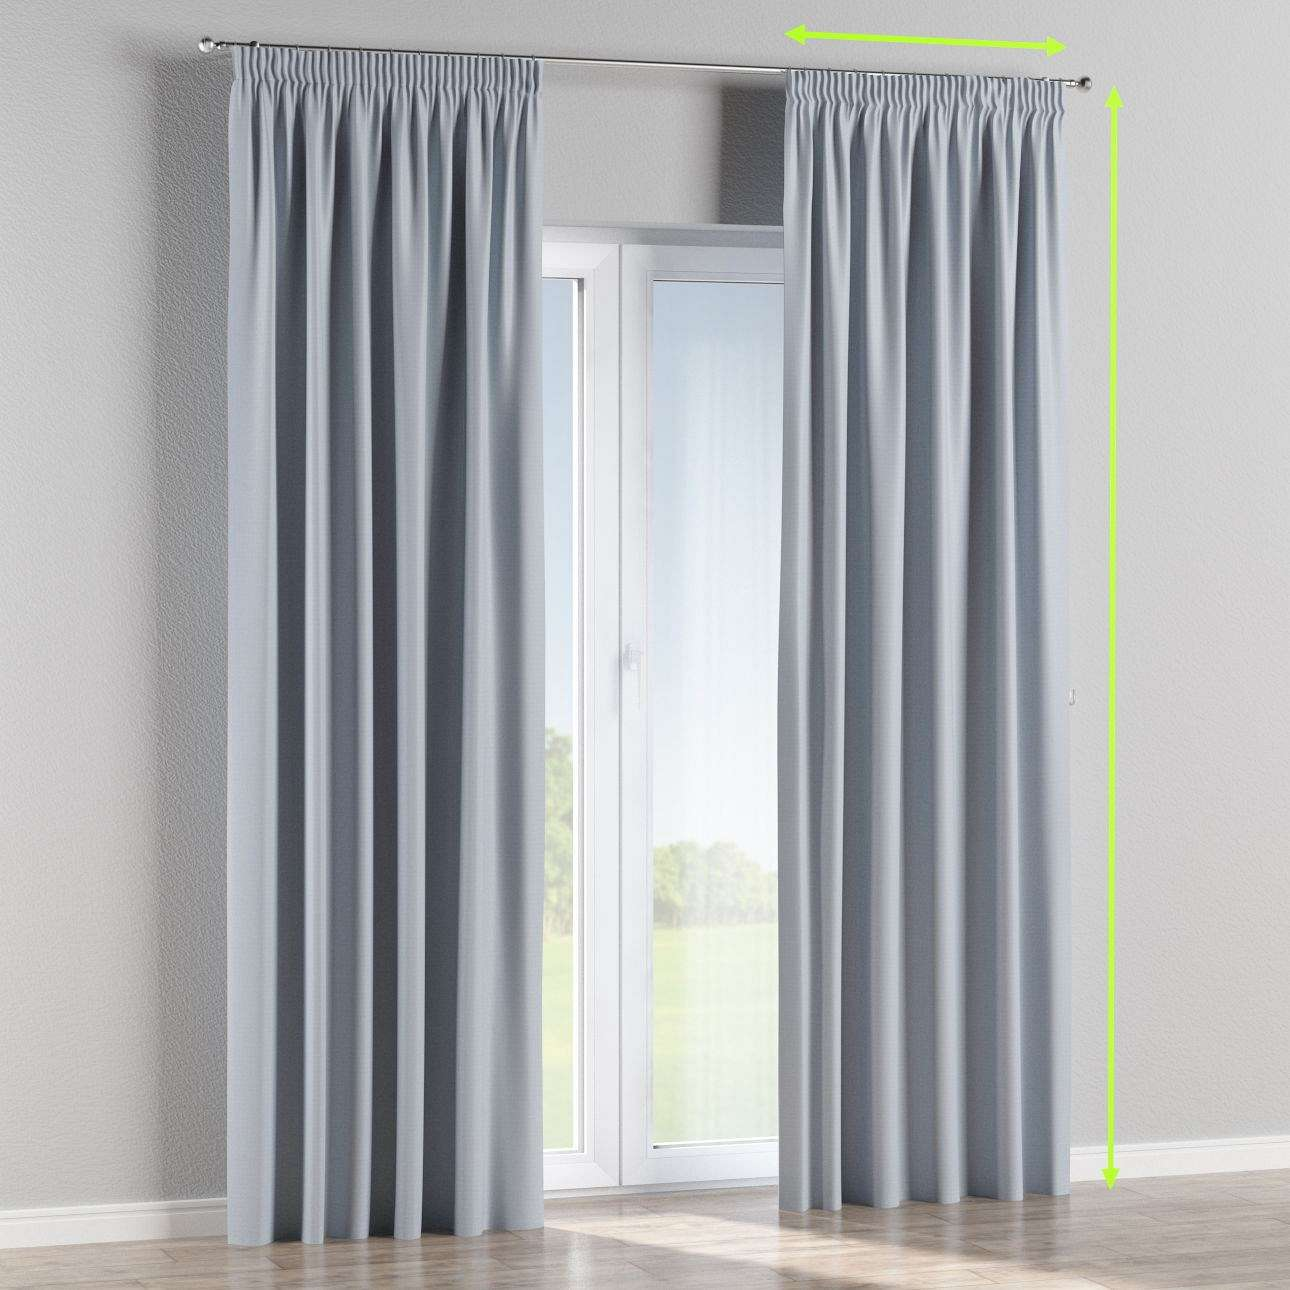 Pencil pleat curtains in collection Blackout, fabric: 269-62